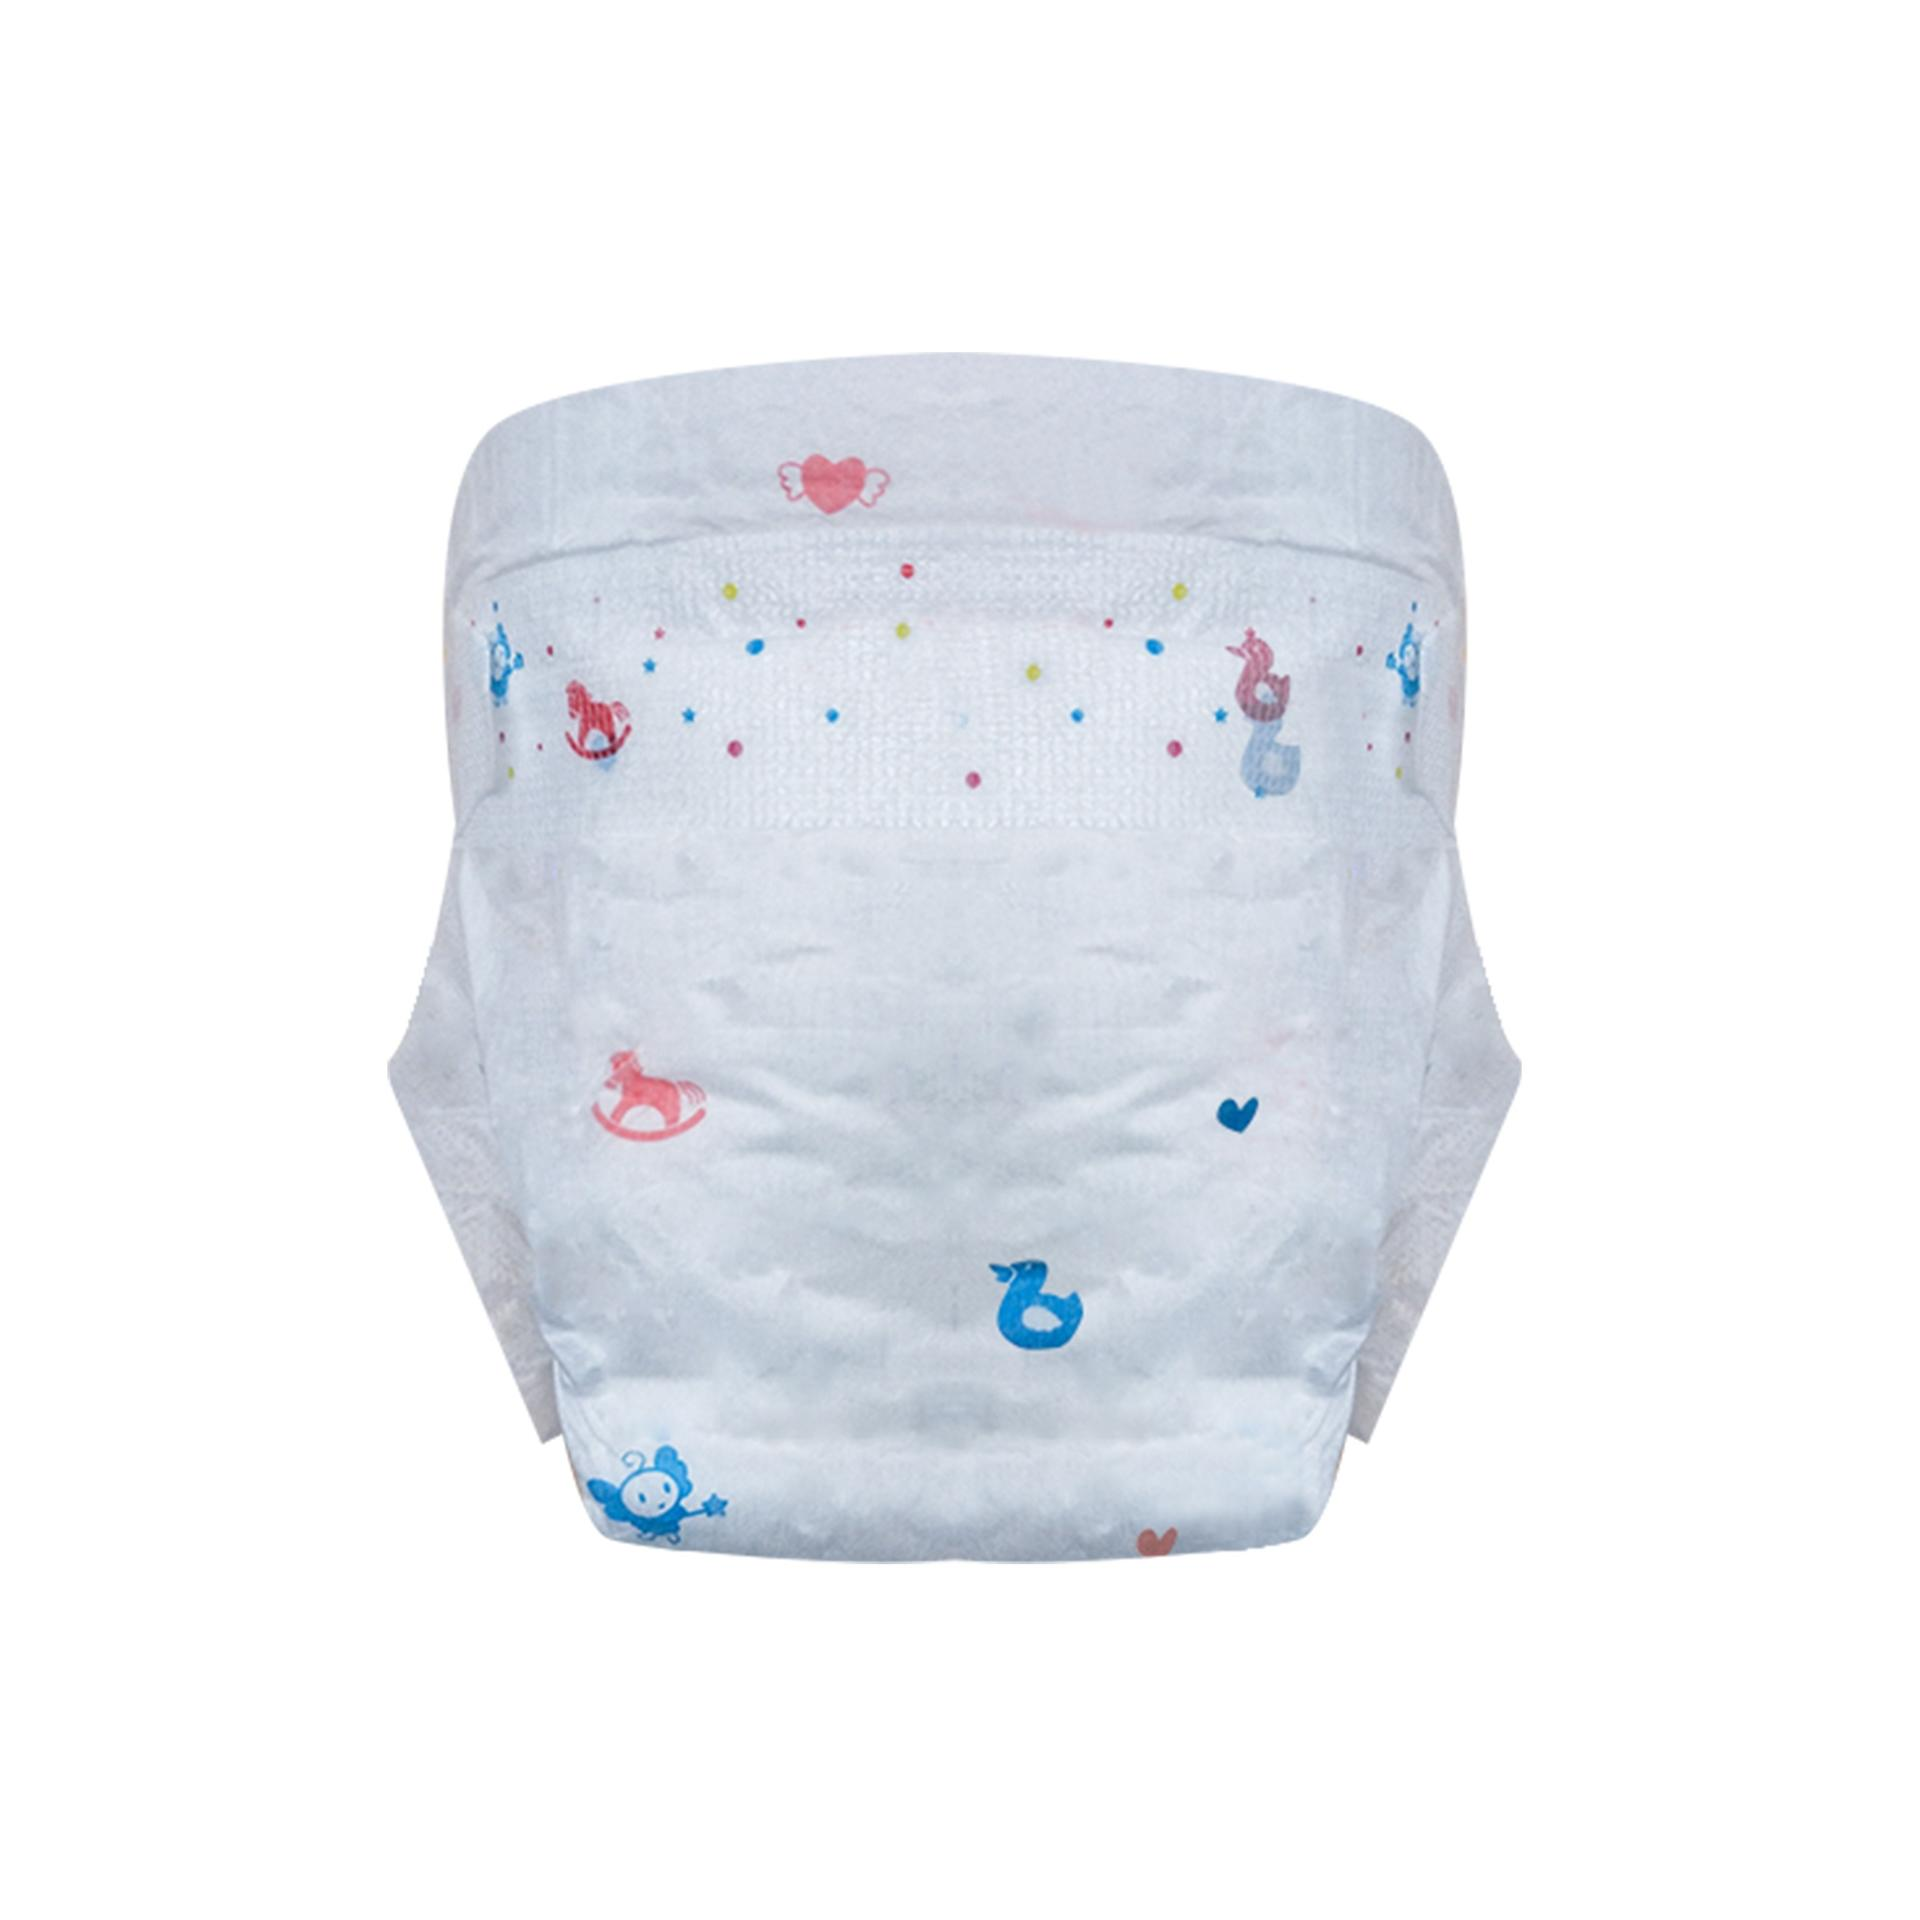 Soft feeling nappies for baby economic baby diapers